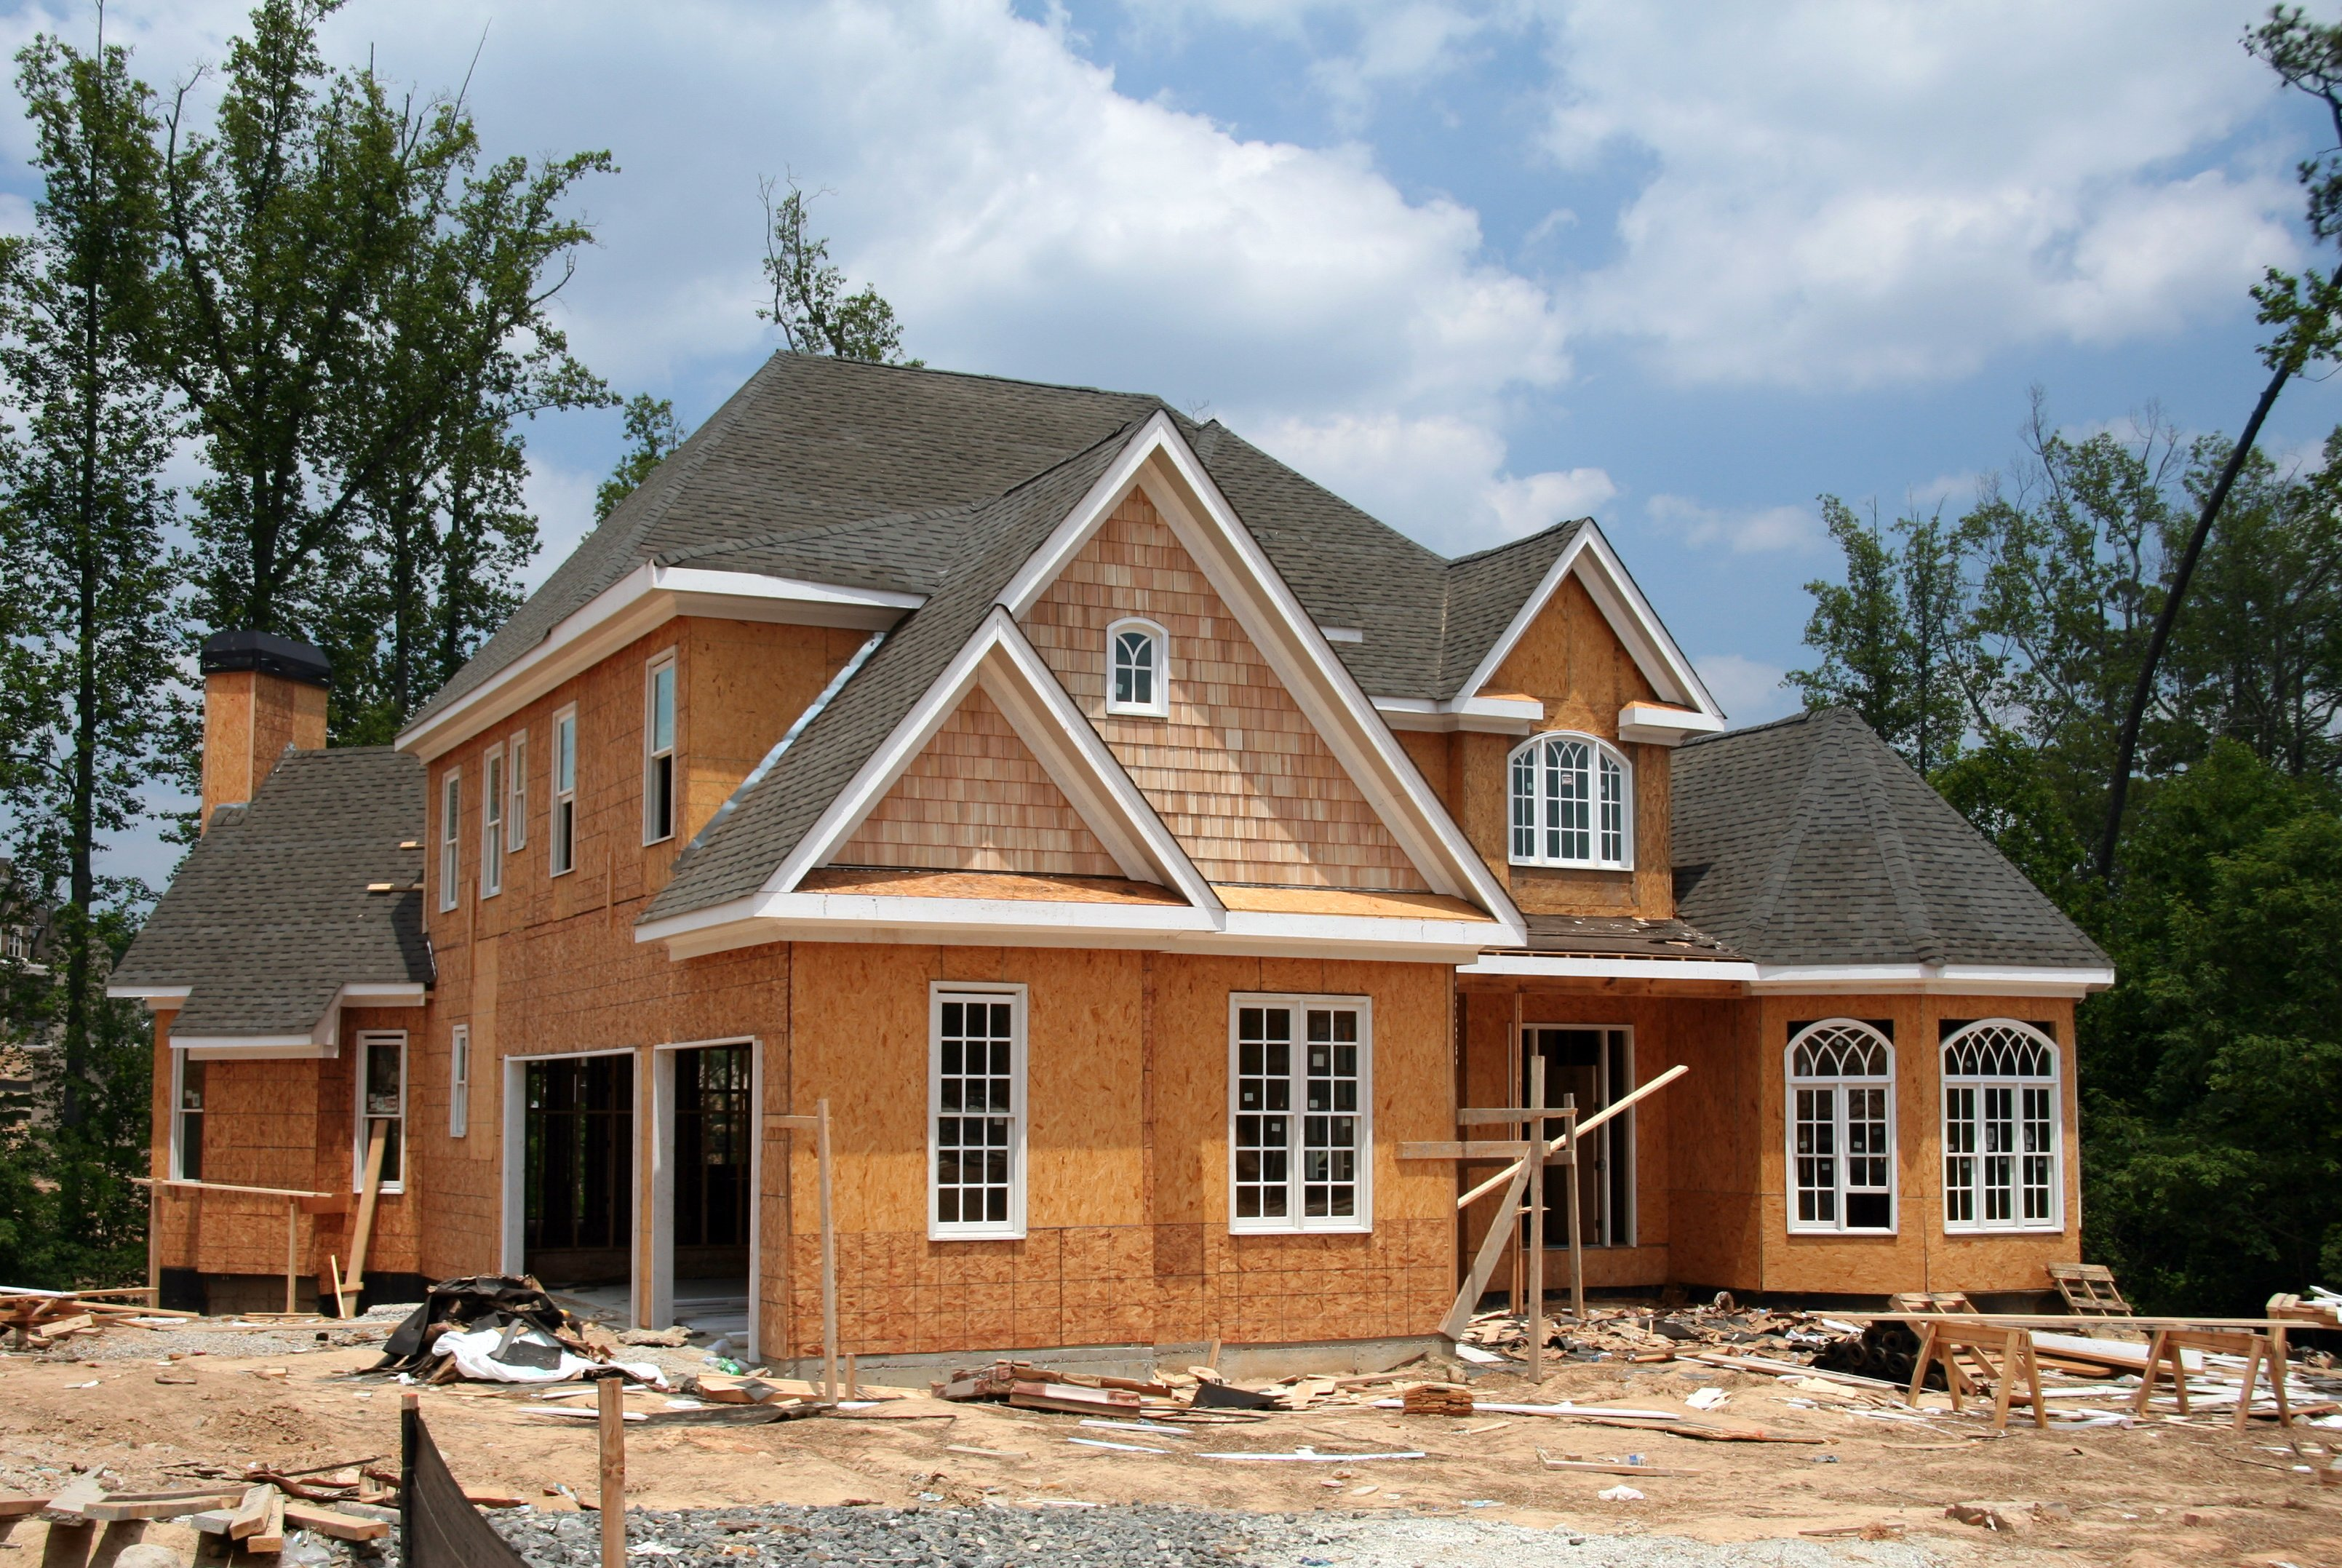 The Advantages of Working With a Realtor For New Construction Home Buying